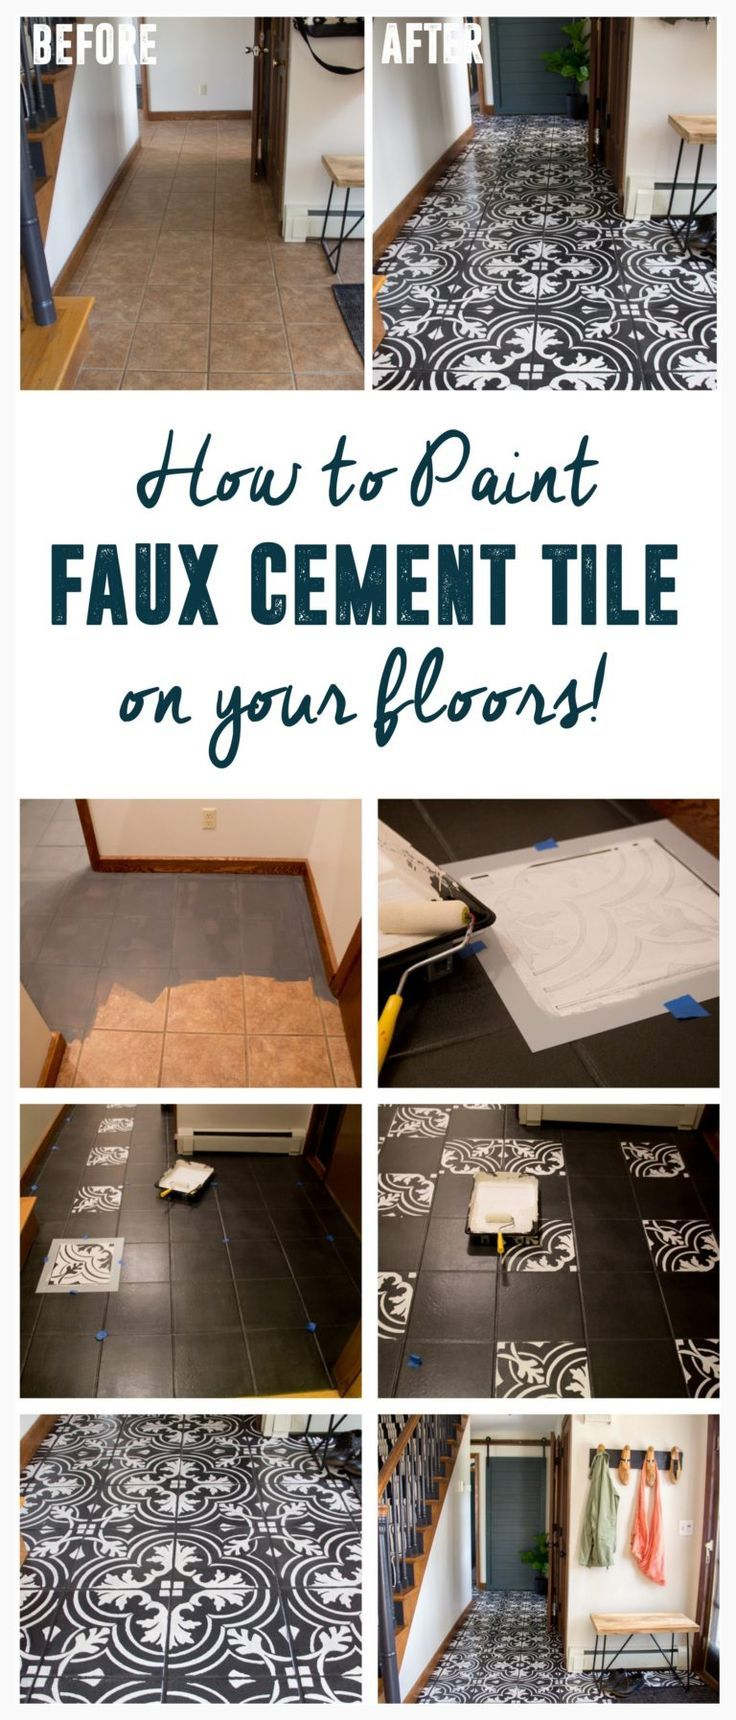 Faux cement tile painted floors painted tiles tile flooring and diy faux cement tile how to paint tile diy faux cement tile floors www dailygadgetfo Gallery